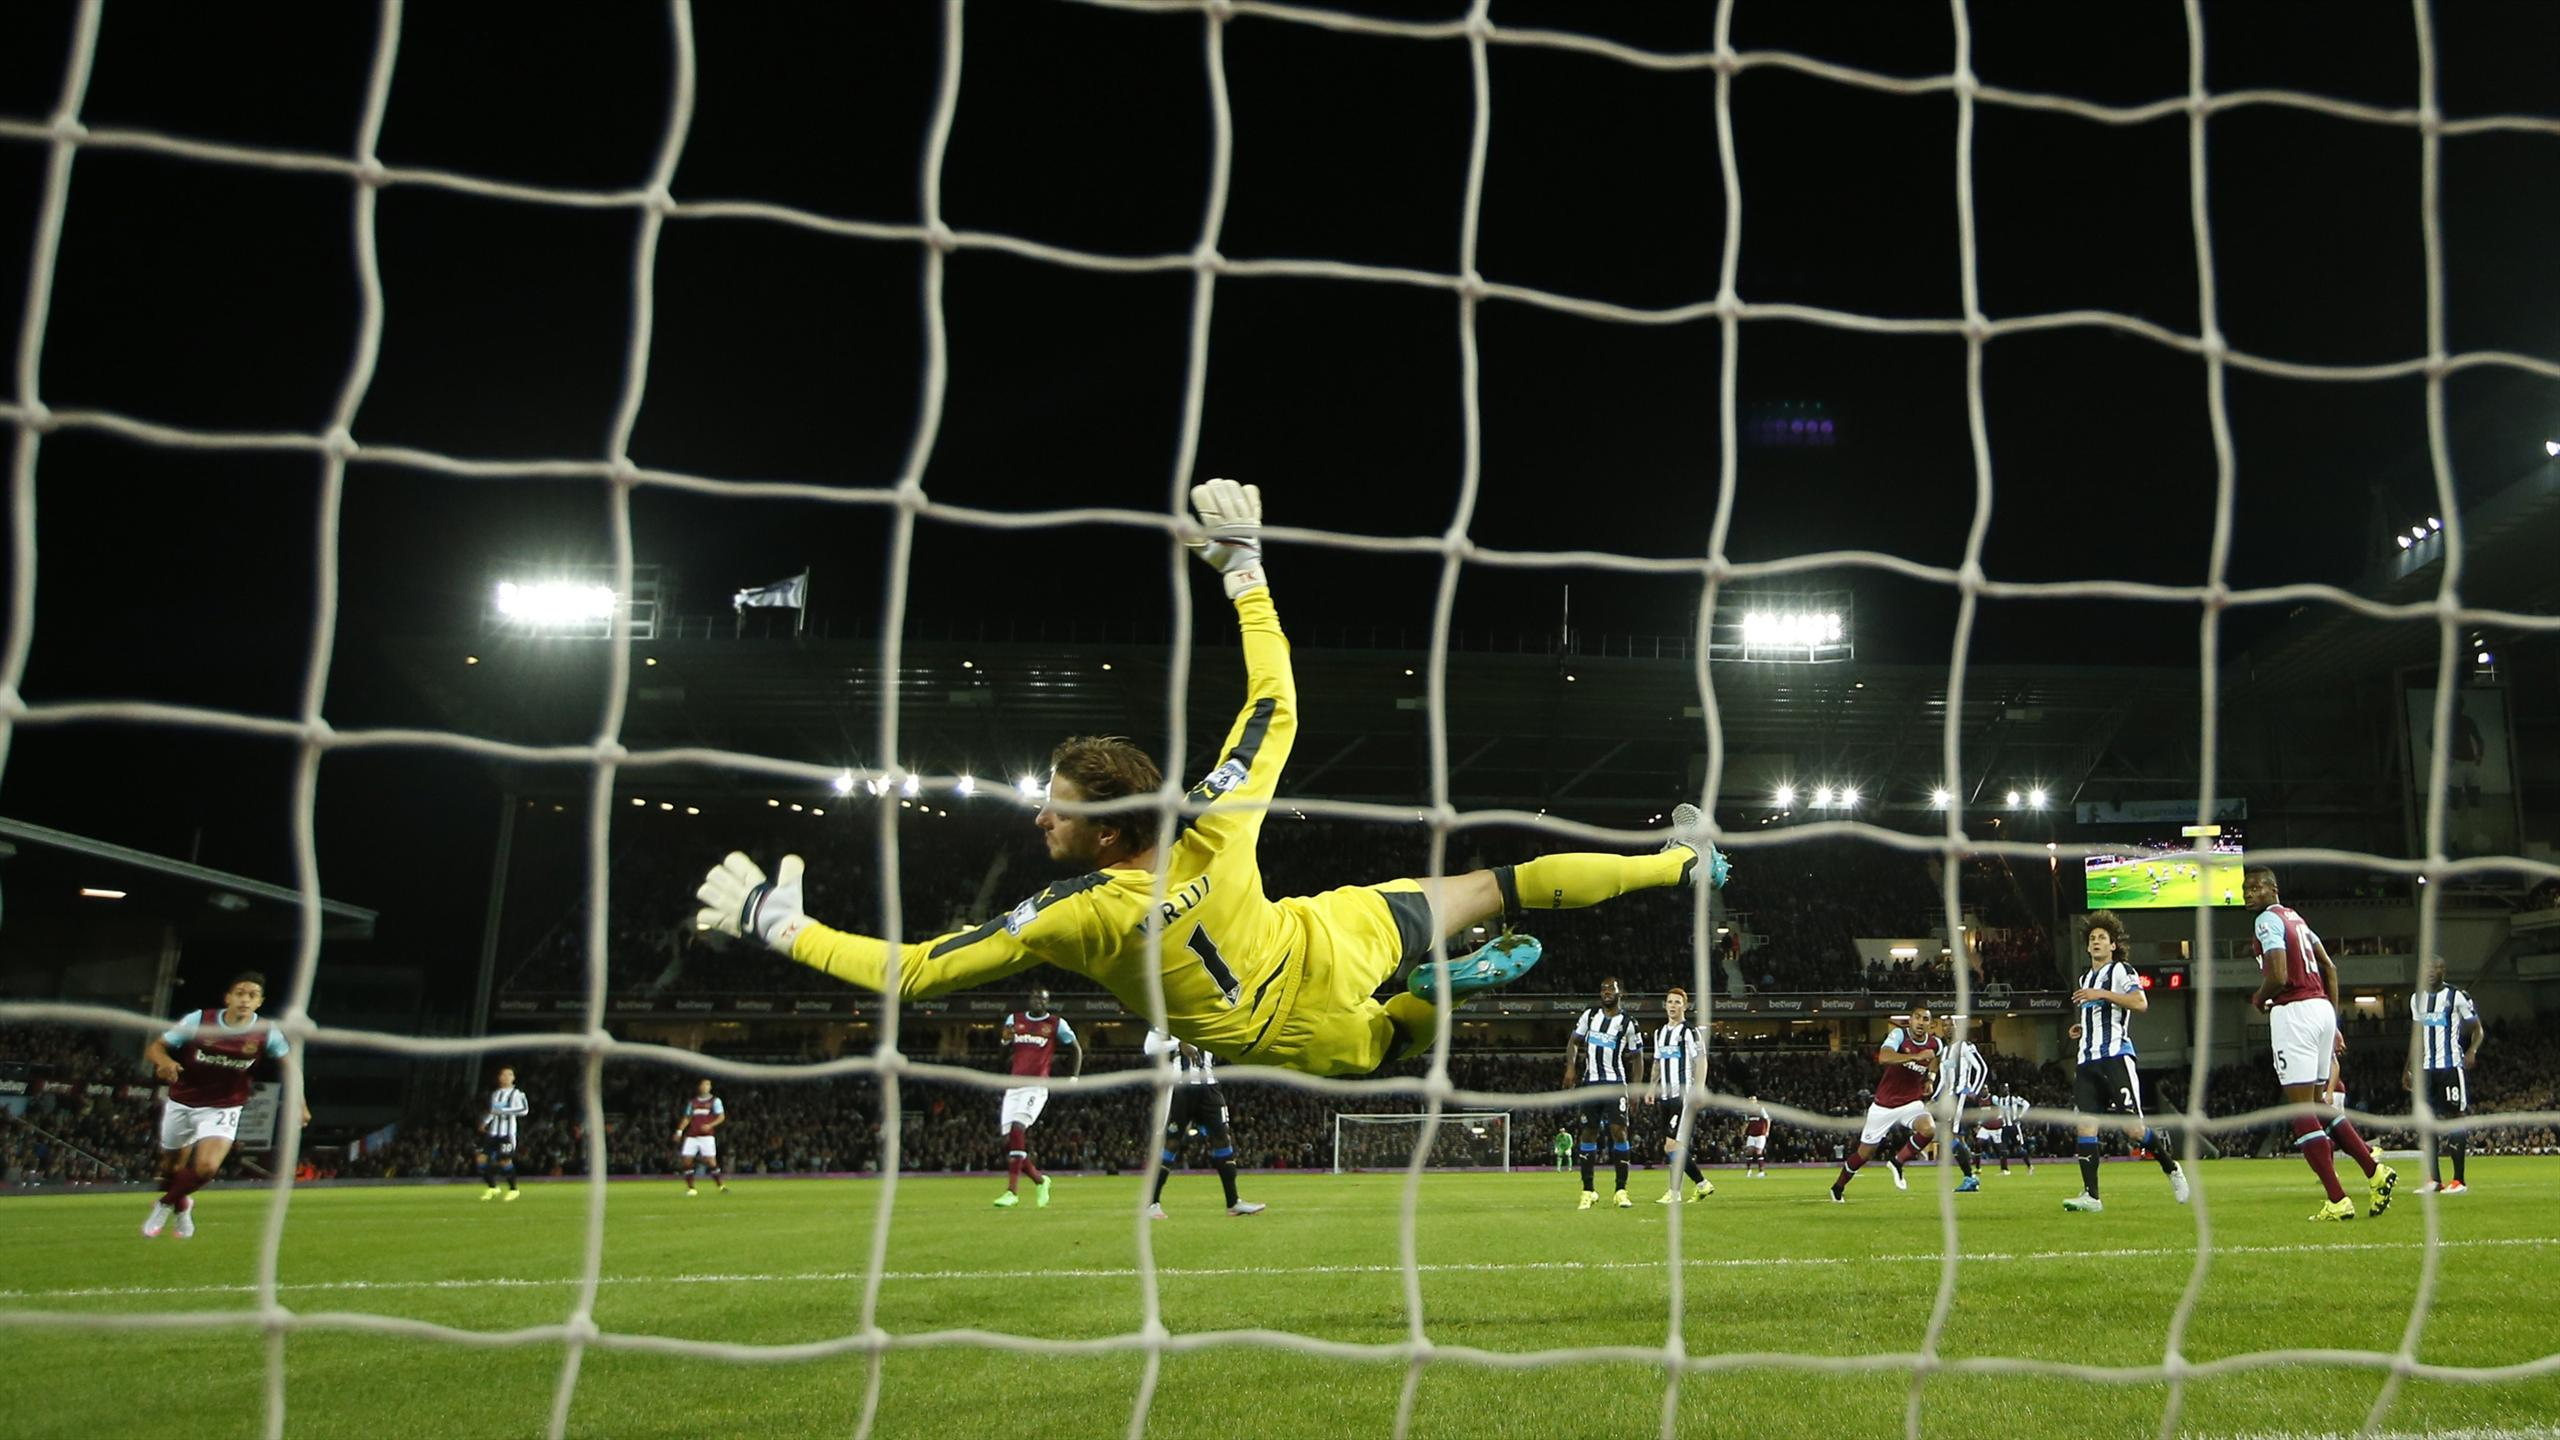 Newcastle's Tim Krul concedes West Ham United's first goal scored by Dimitri Payet